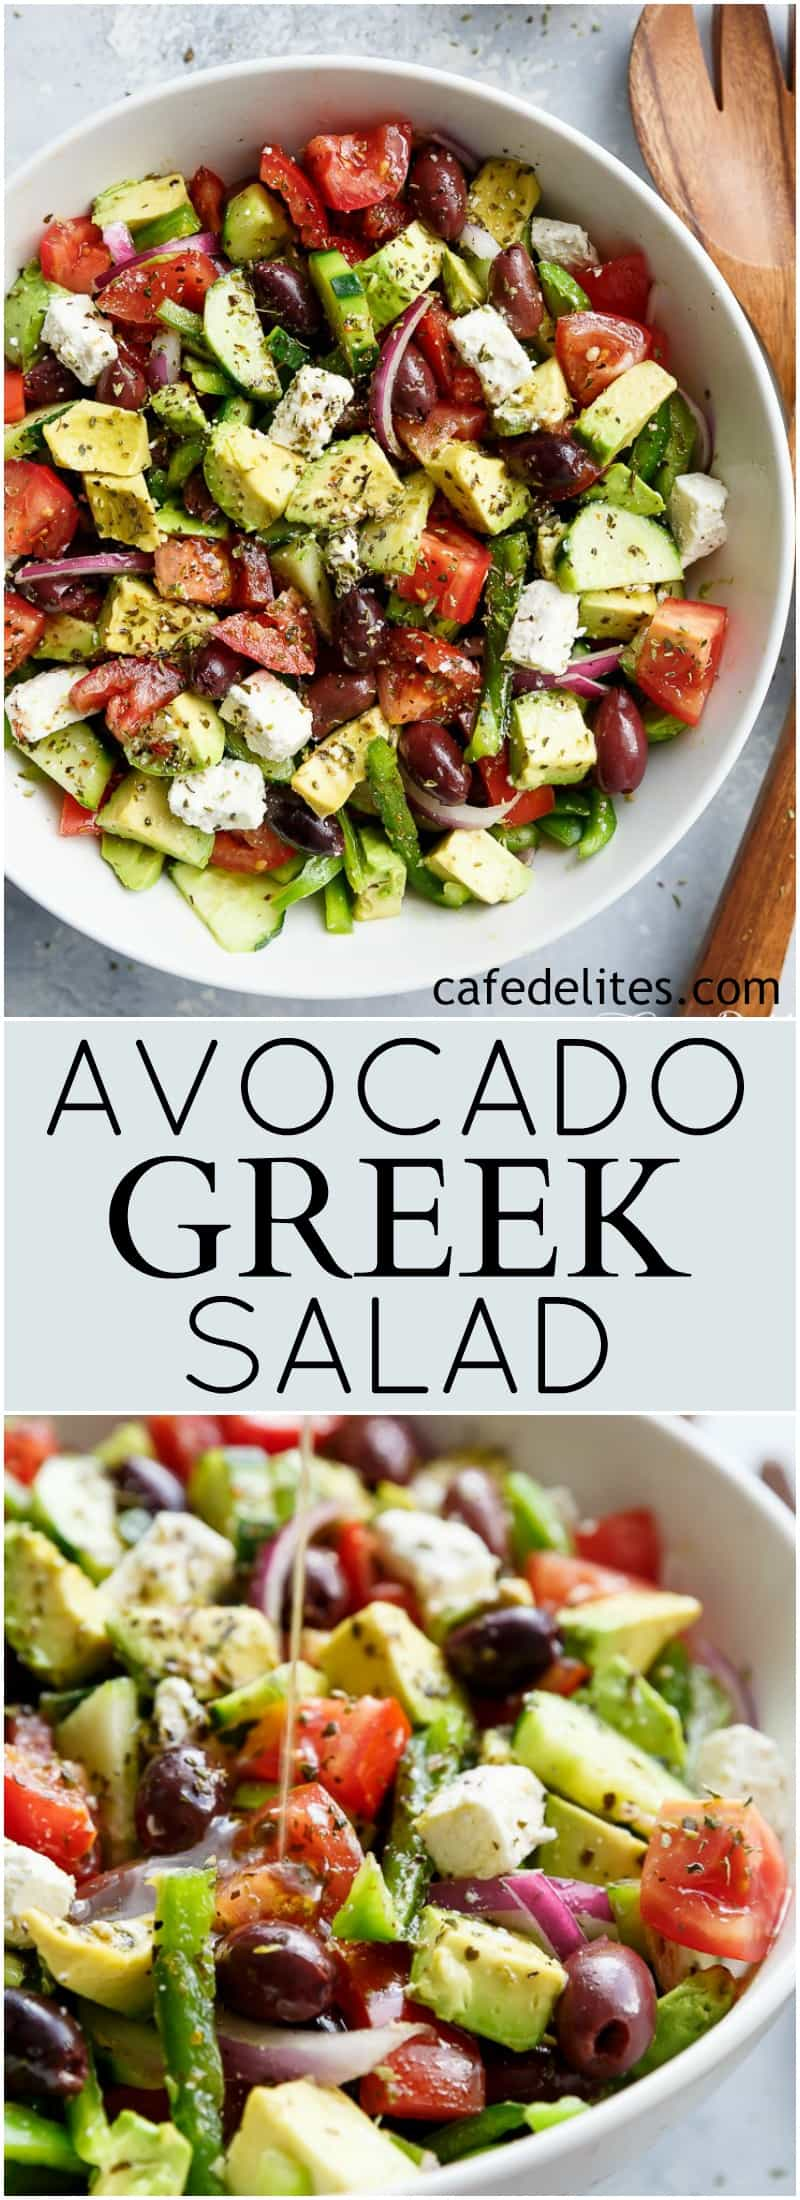 Avocado Greek Salad with a Greek Salad Dressing is a family favourite side salad served with anything! | cafedelites.com We would like to introduce you to a helper who will have your right arm in the kitchen, save you from purchasing a lot of pieces and making room for them: Thermomix Kitchen Tool. The most impressive feature of this smart kitchen appliance is that it can perform many different functions alone such as choppin... #Avocado #Dressing #family #favourite #Greek #Salad #Side